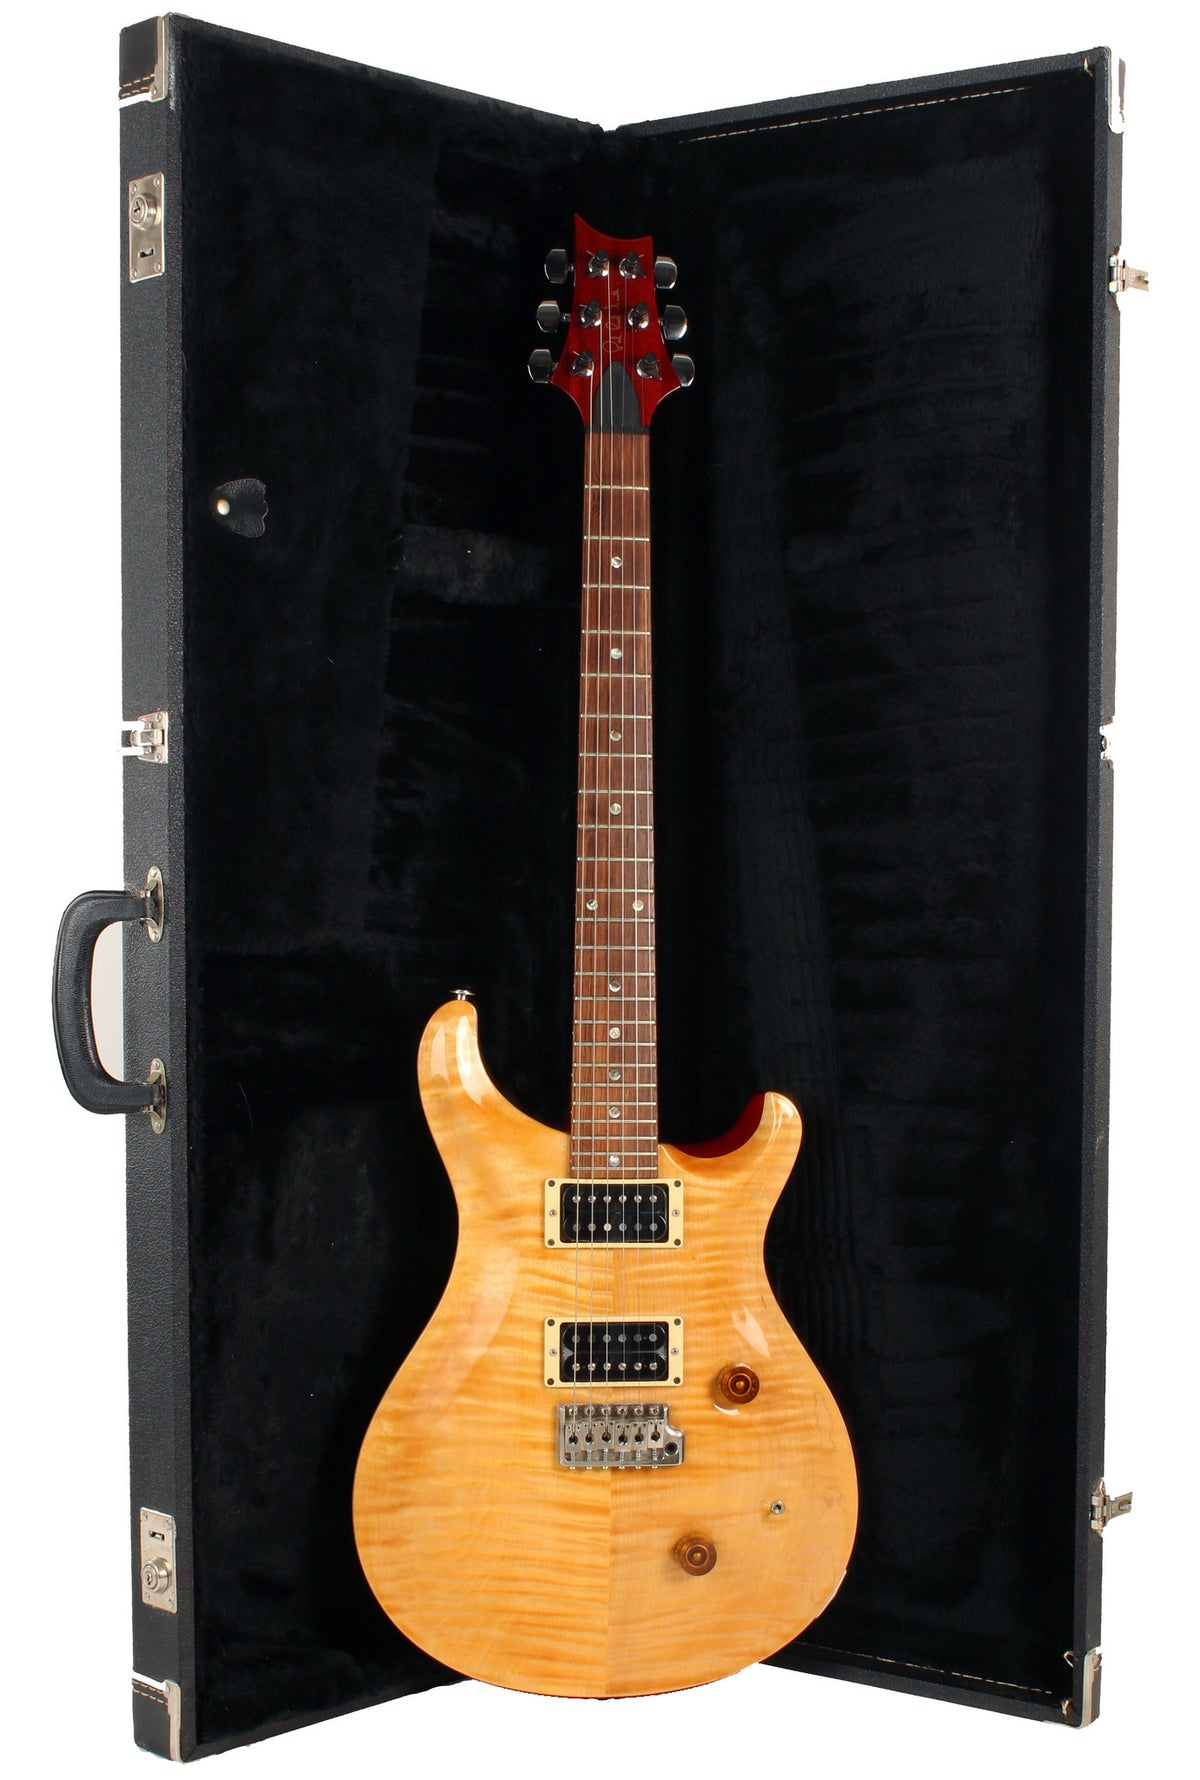 1987 PRS Custom - Garrett Park Guitars  - 9